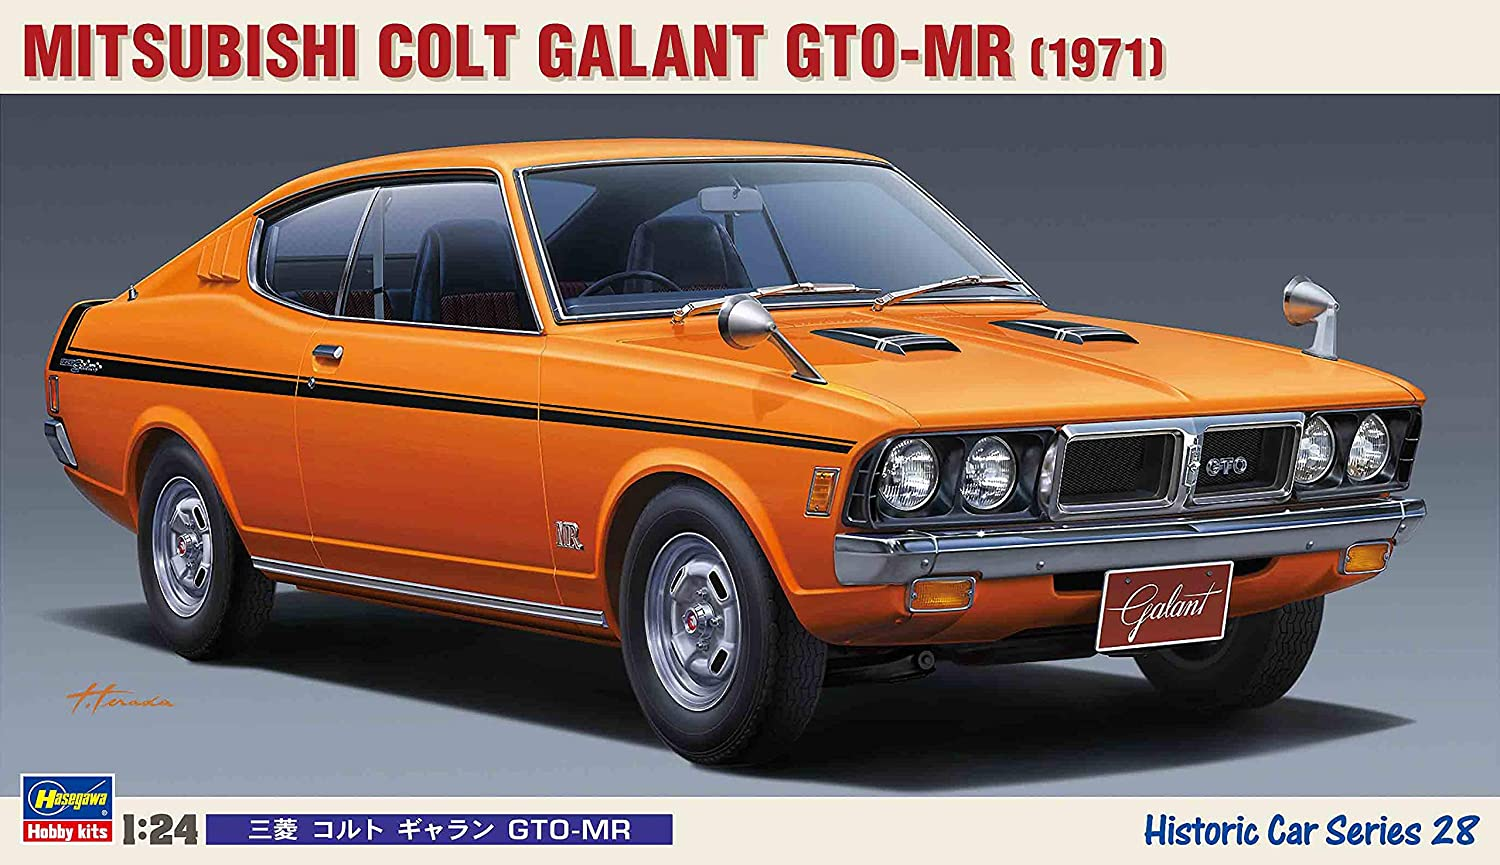 Hasegawa Mitsubishi Colt Galant GTO-MR 1971, 1/24 Scale Historic Car Series 28 Plastic Model Kit / Item # 21128